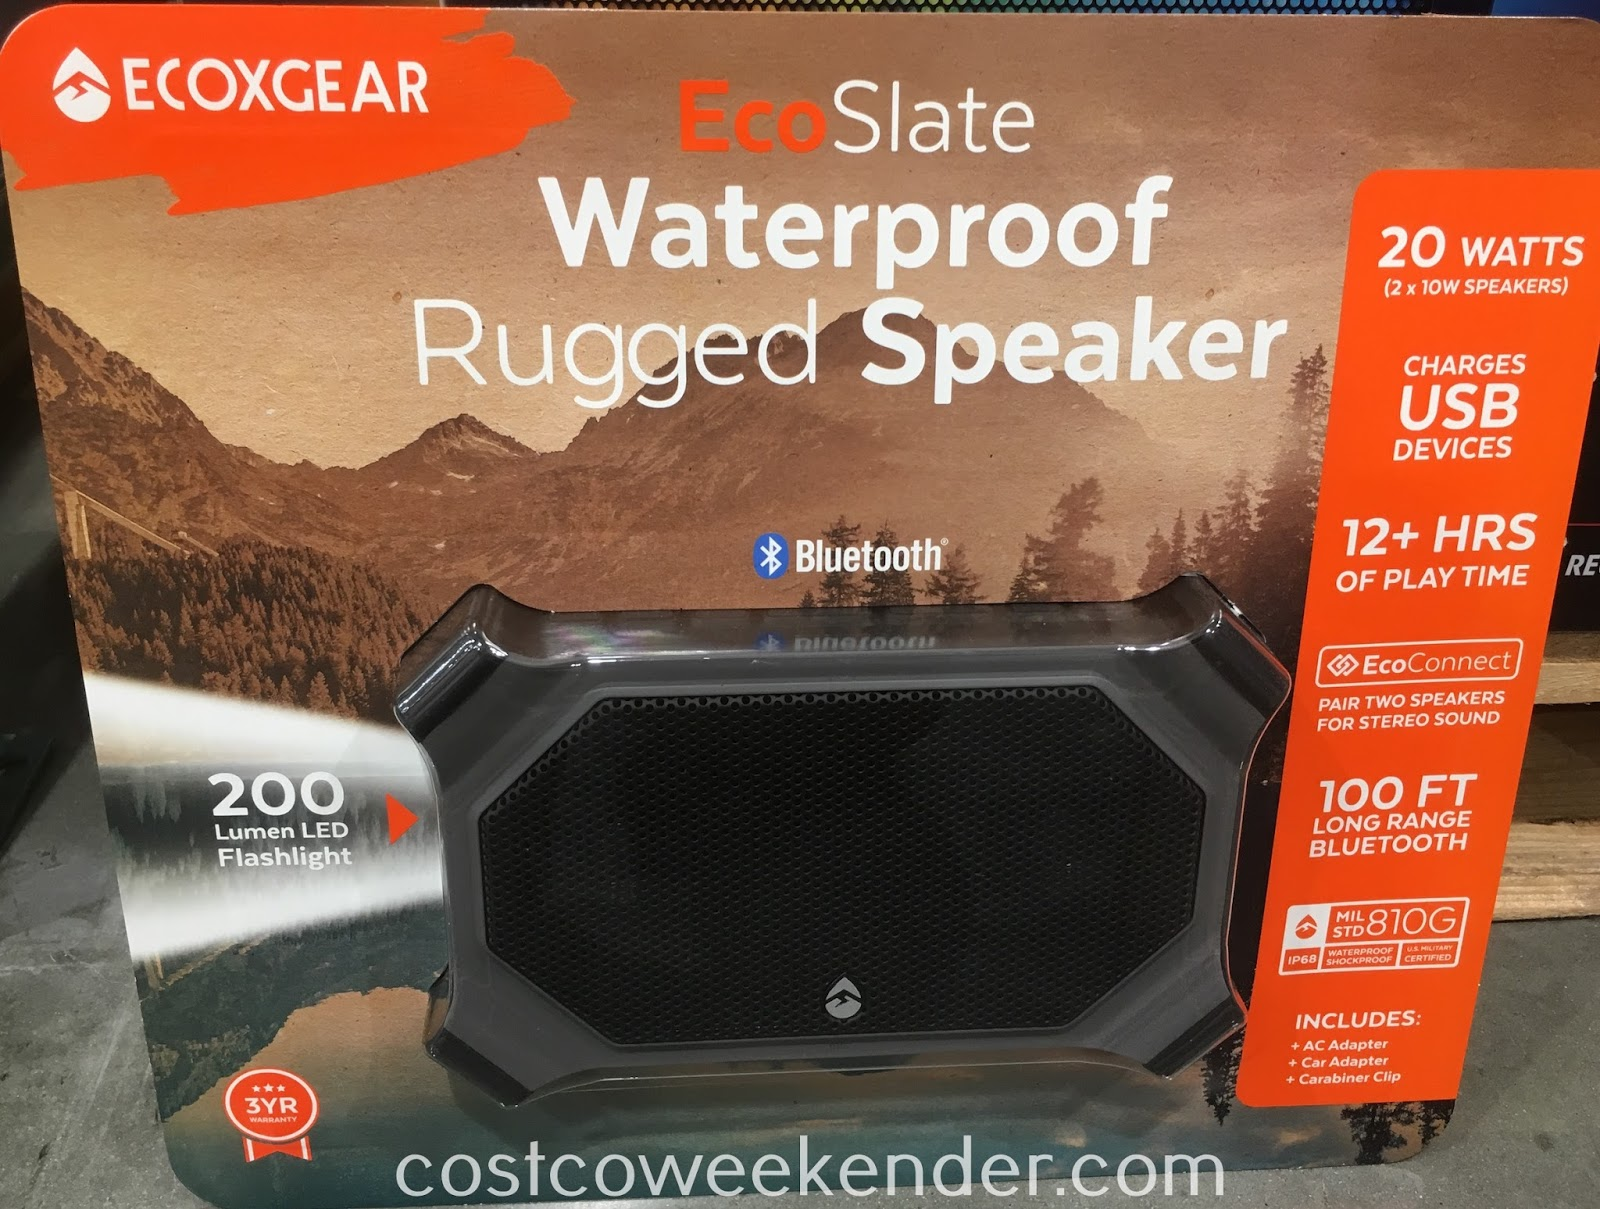 Enjoy listening to music while in the backcountry with the ECOXGEAR EcoSlate Bluetooth Speaker